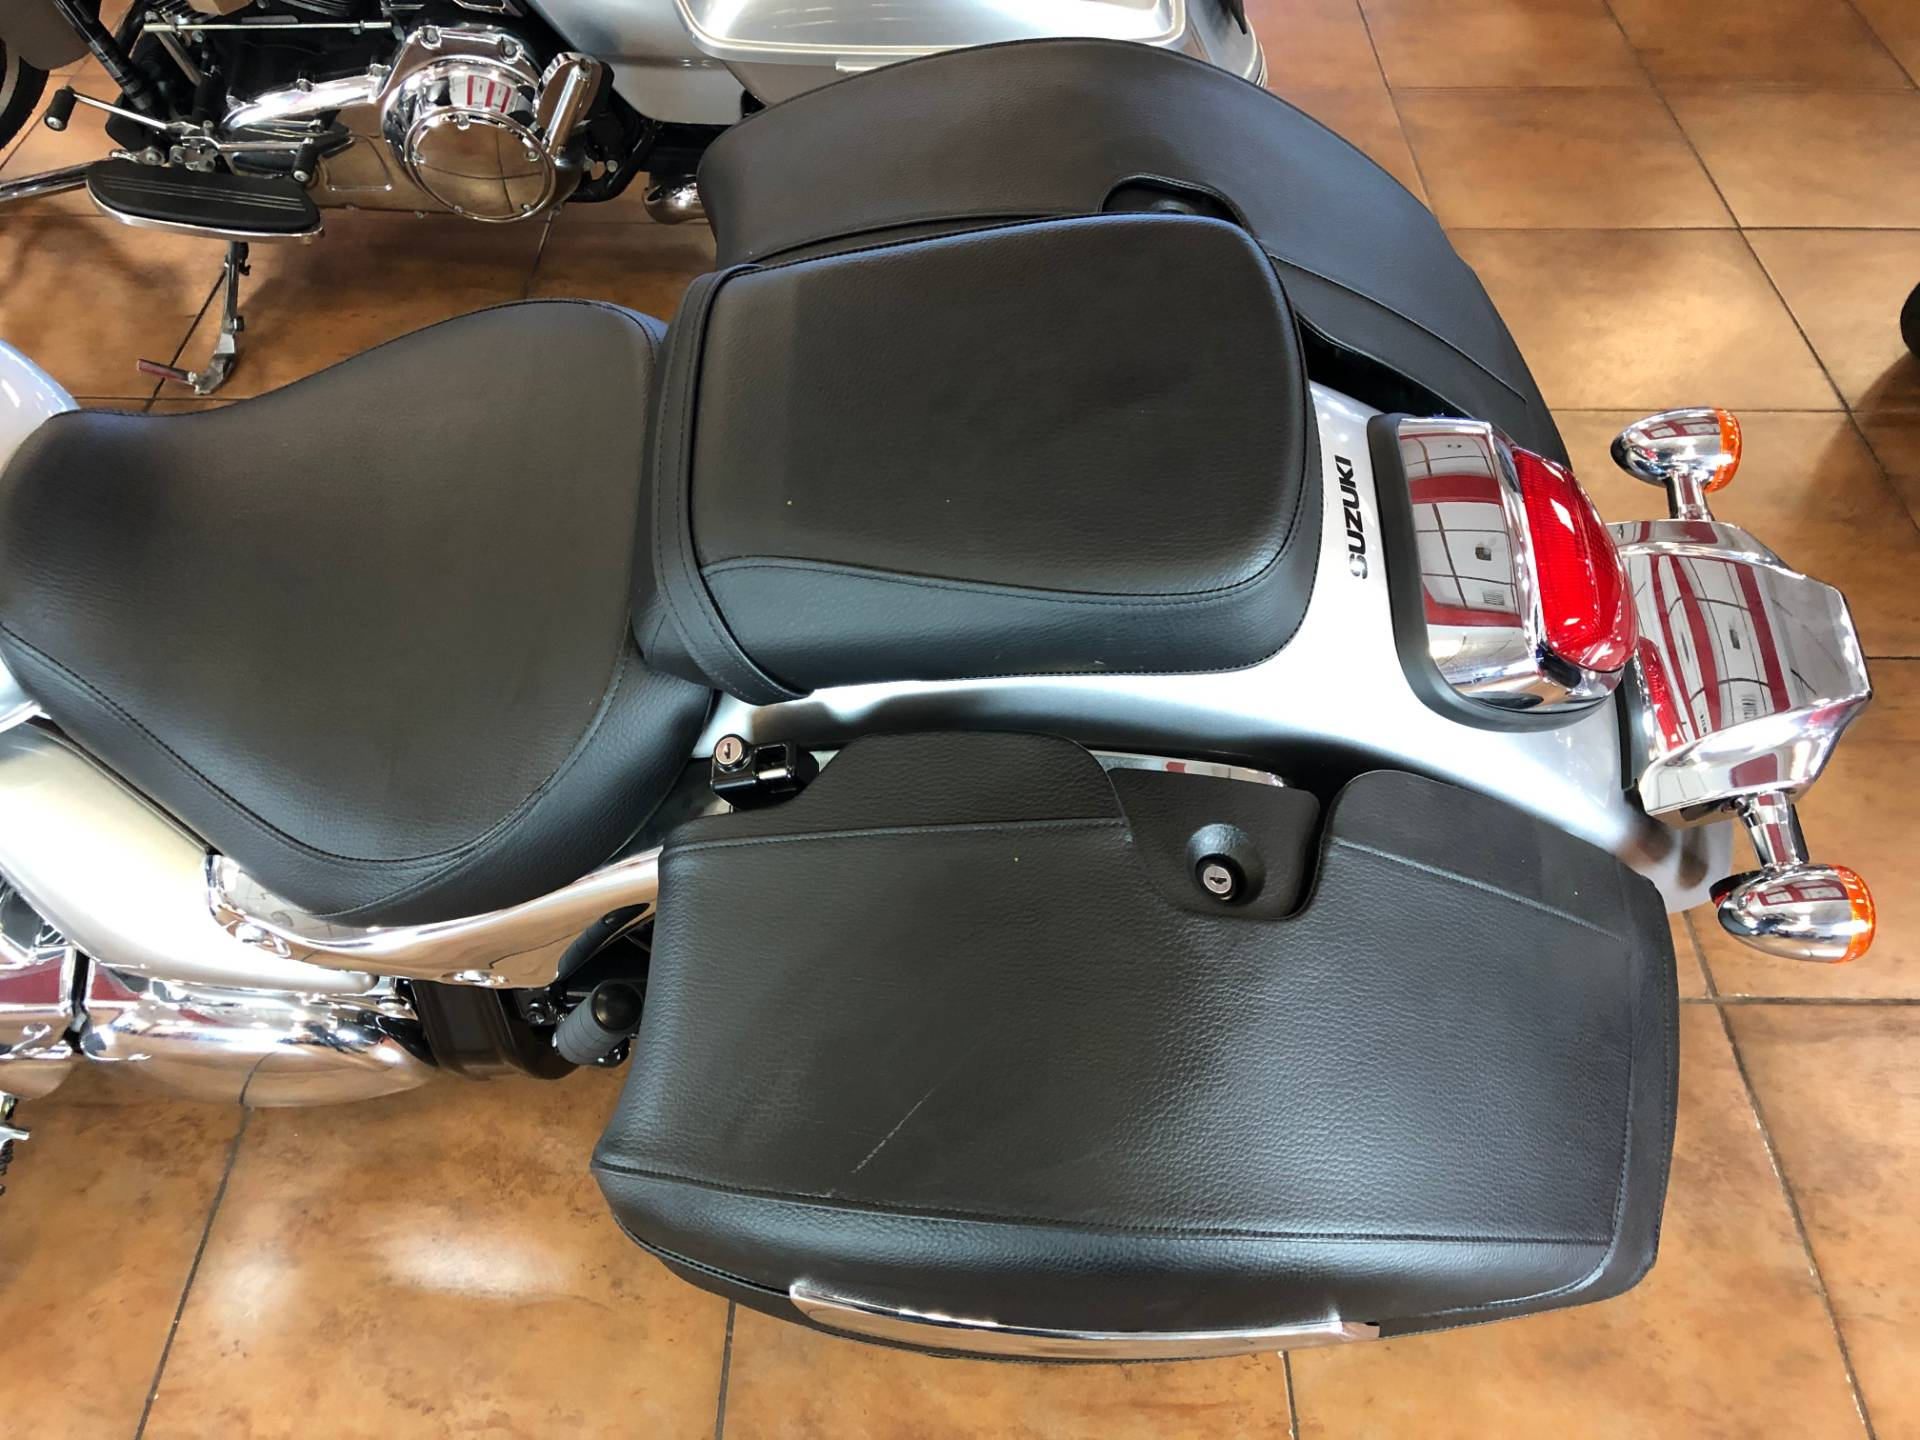 2019 Suzuki Boulevard C90T in Pinellas Park, Florida - Photo 18